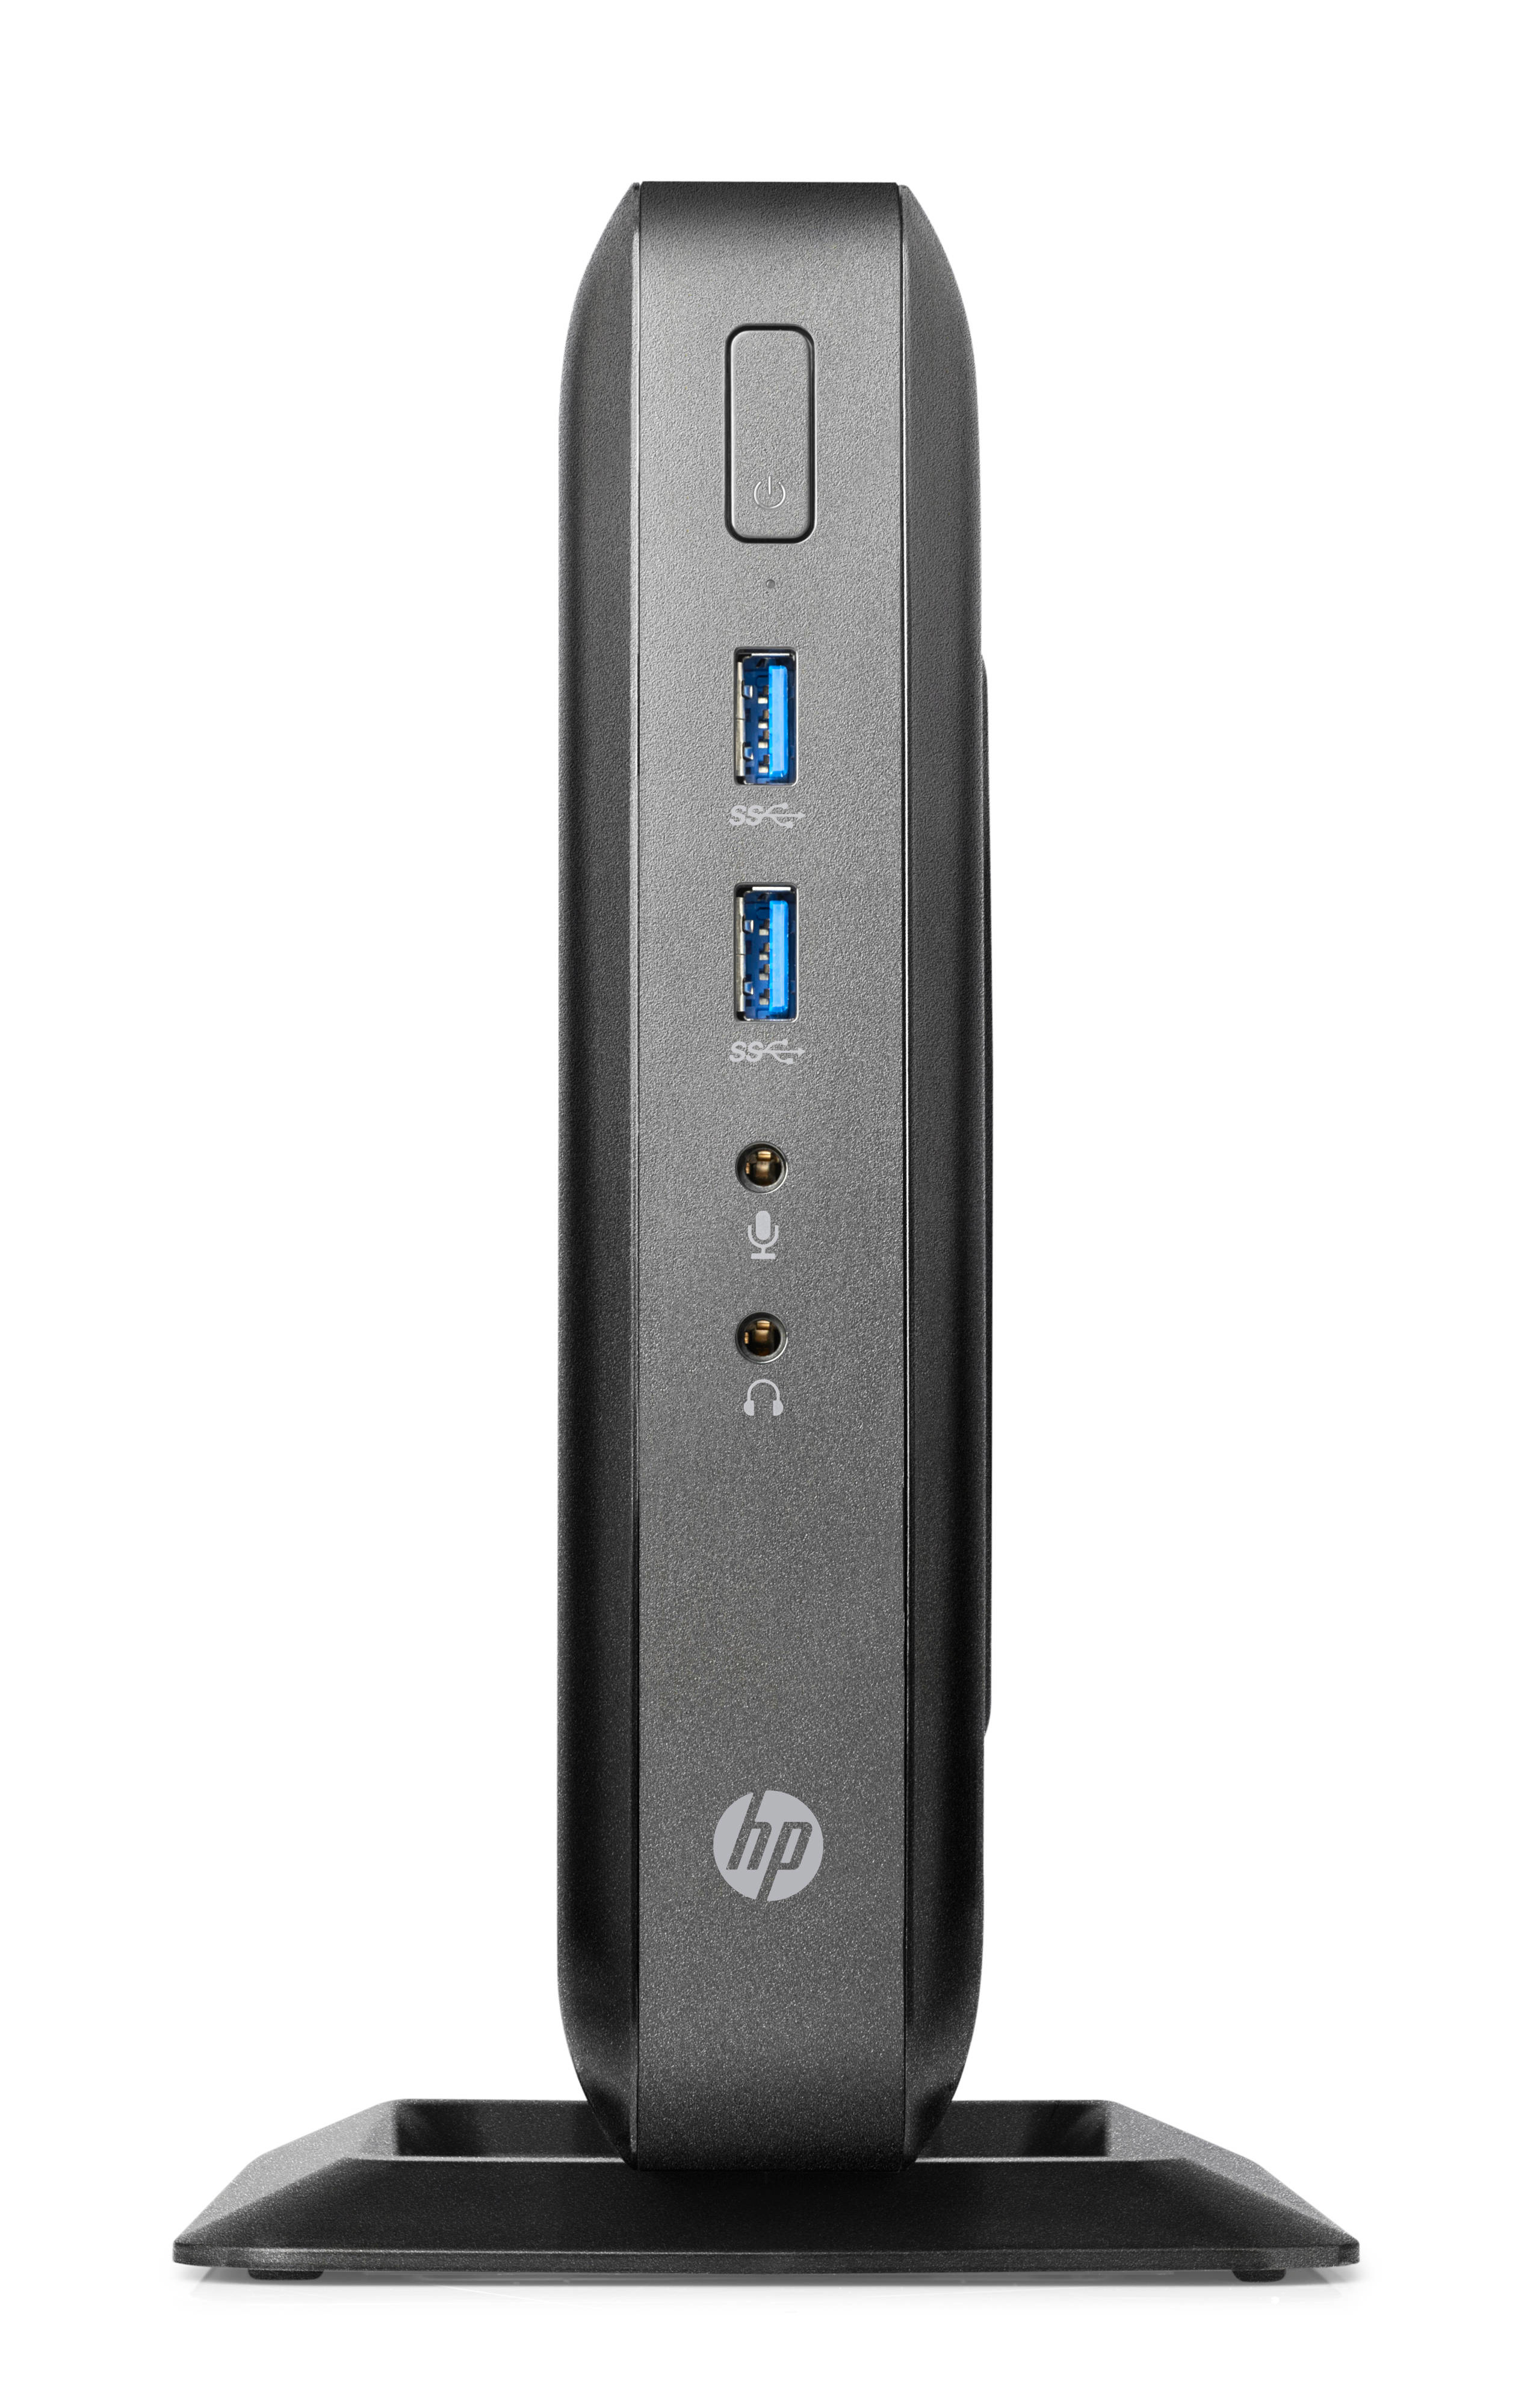 Hewlett Packard (HP) HP Flexible Thin Client t520 #ABB Version        G9F08AT#ABB